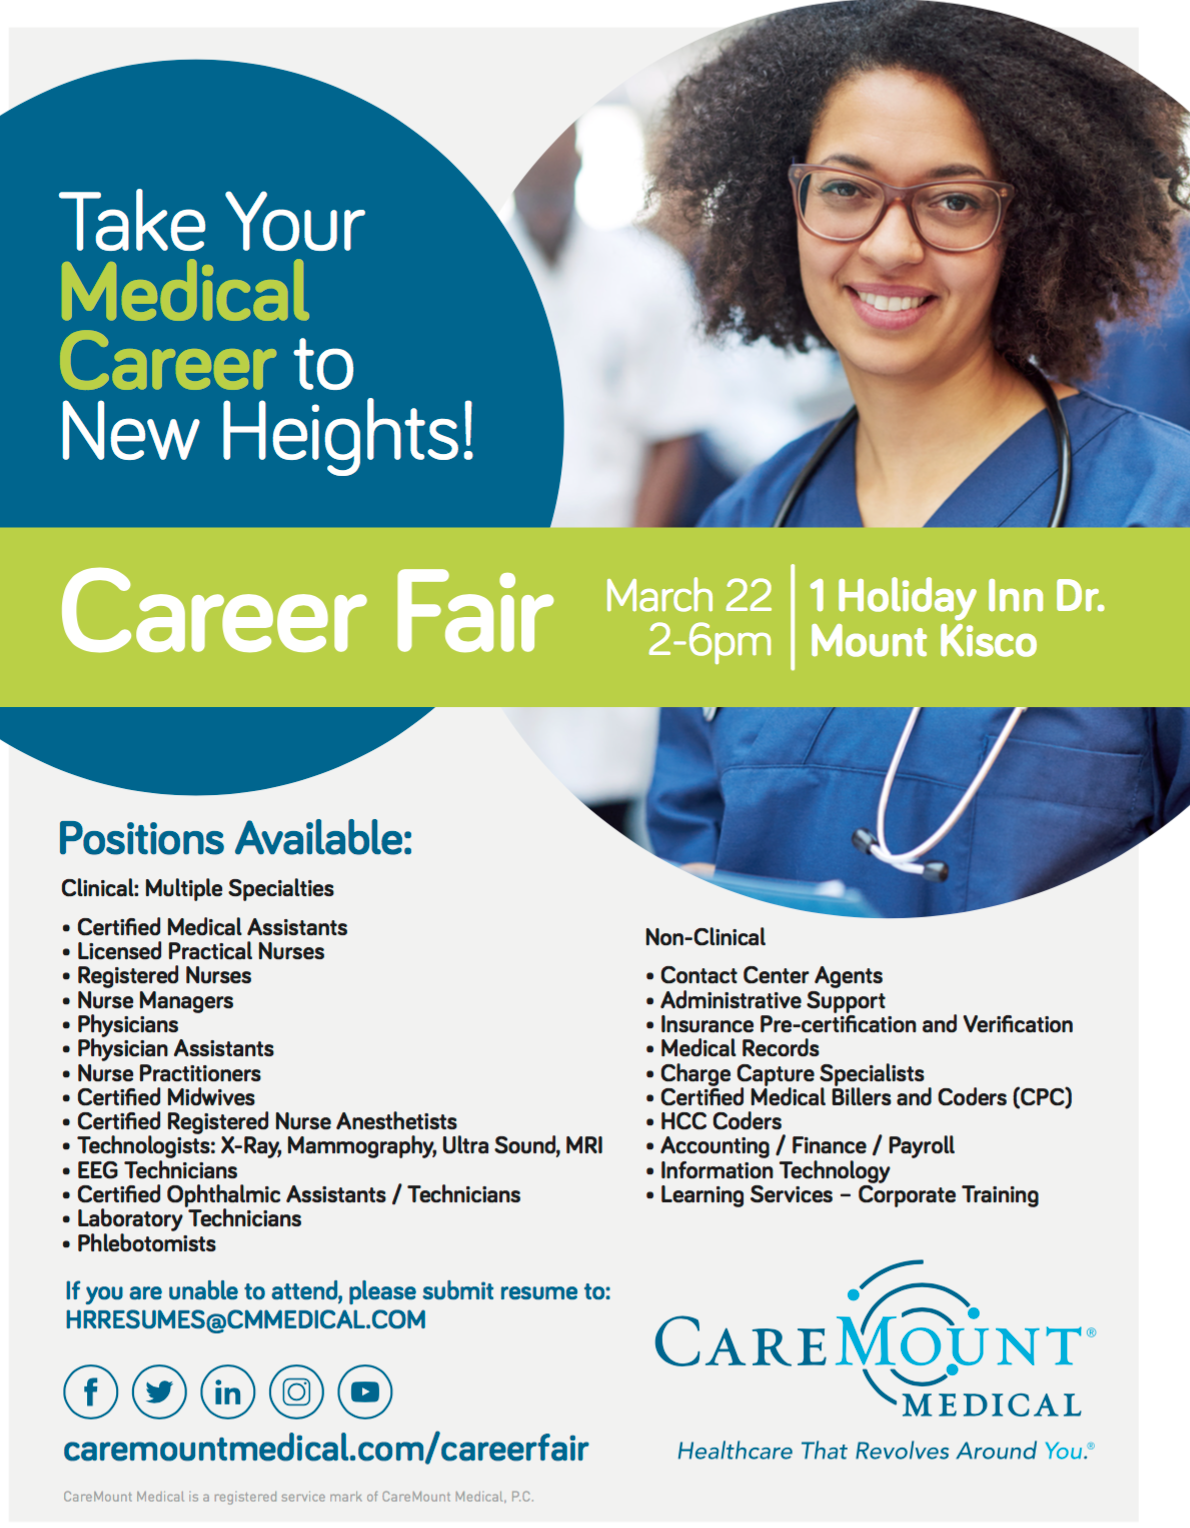 CareMount Medical to Host Career Fair March 22nd